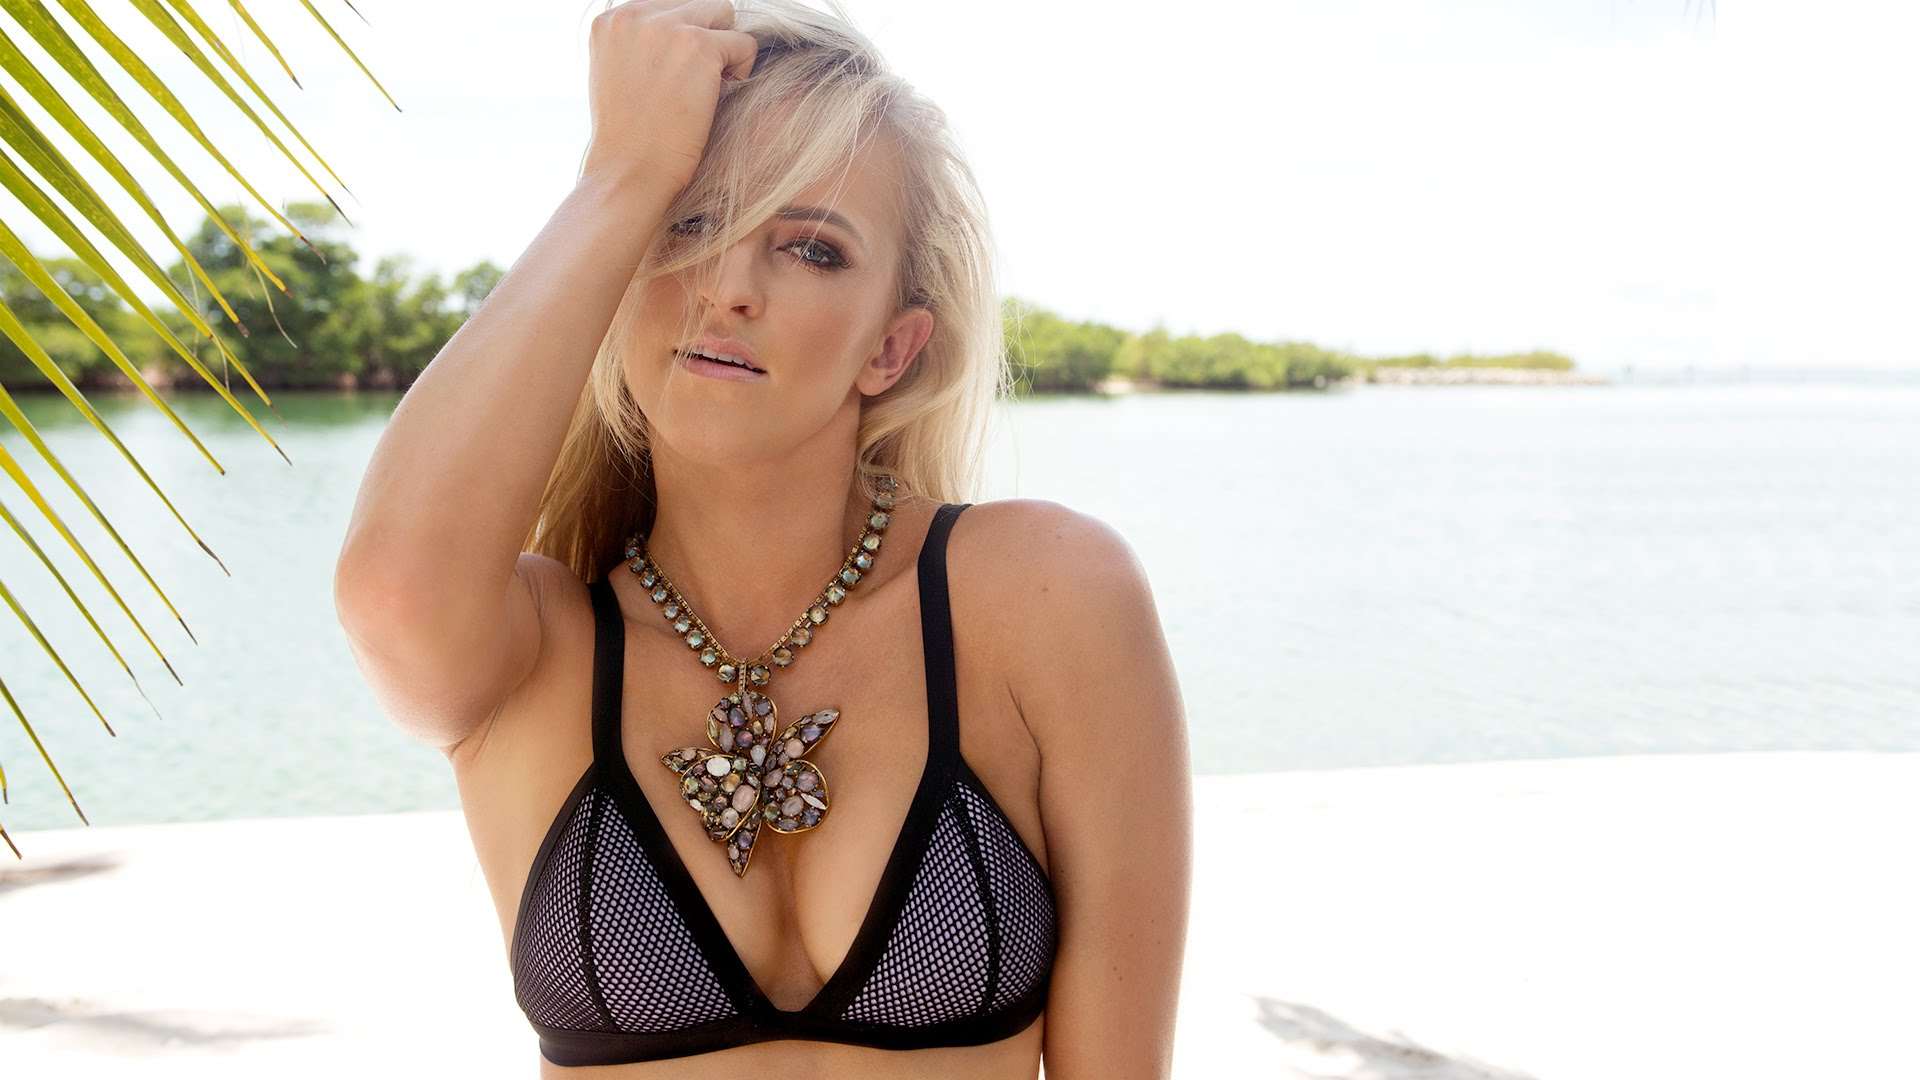 Summer Rae Sexy Boobs Pictures in Black Bikini